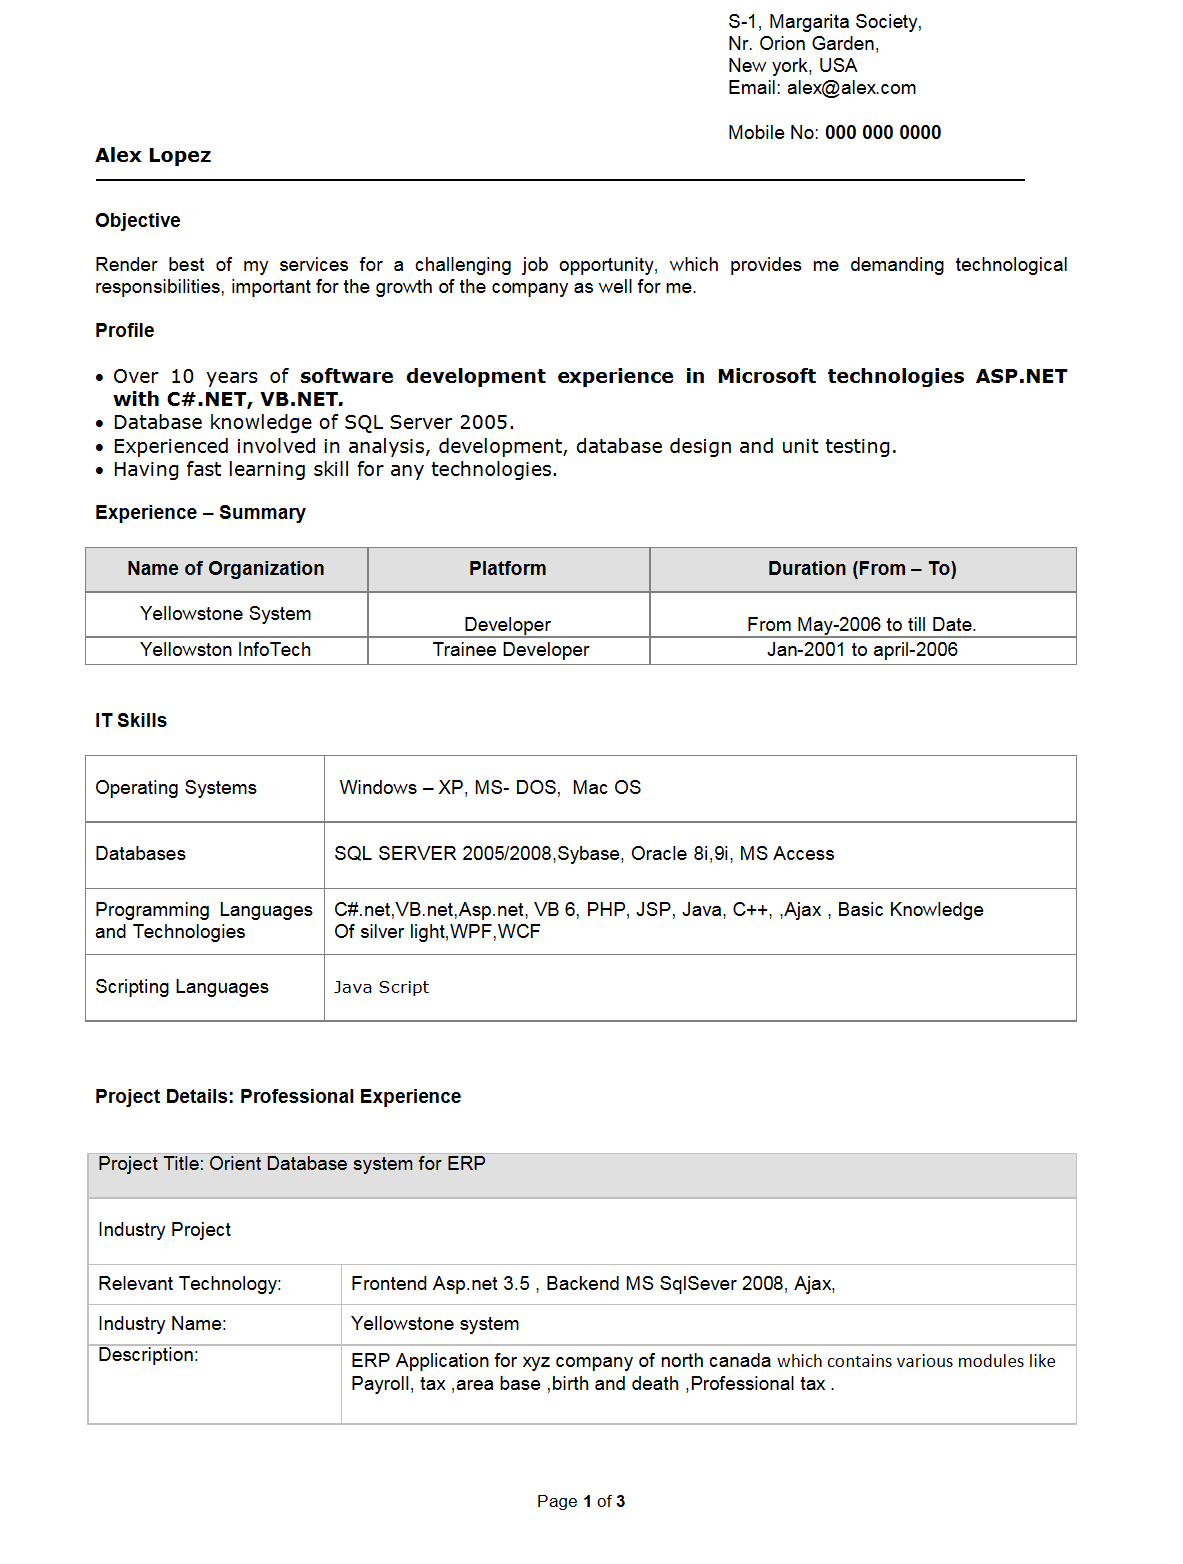 experience resume for software developer professional software